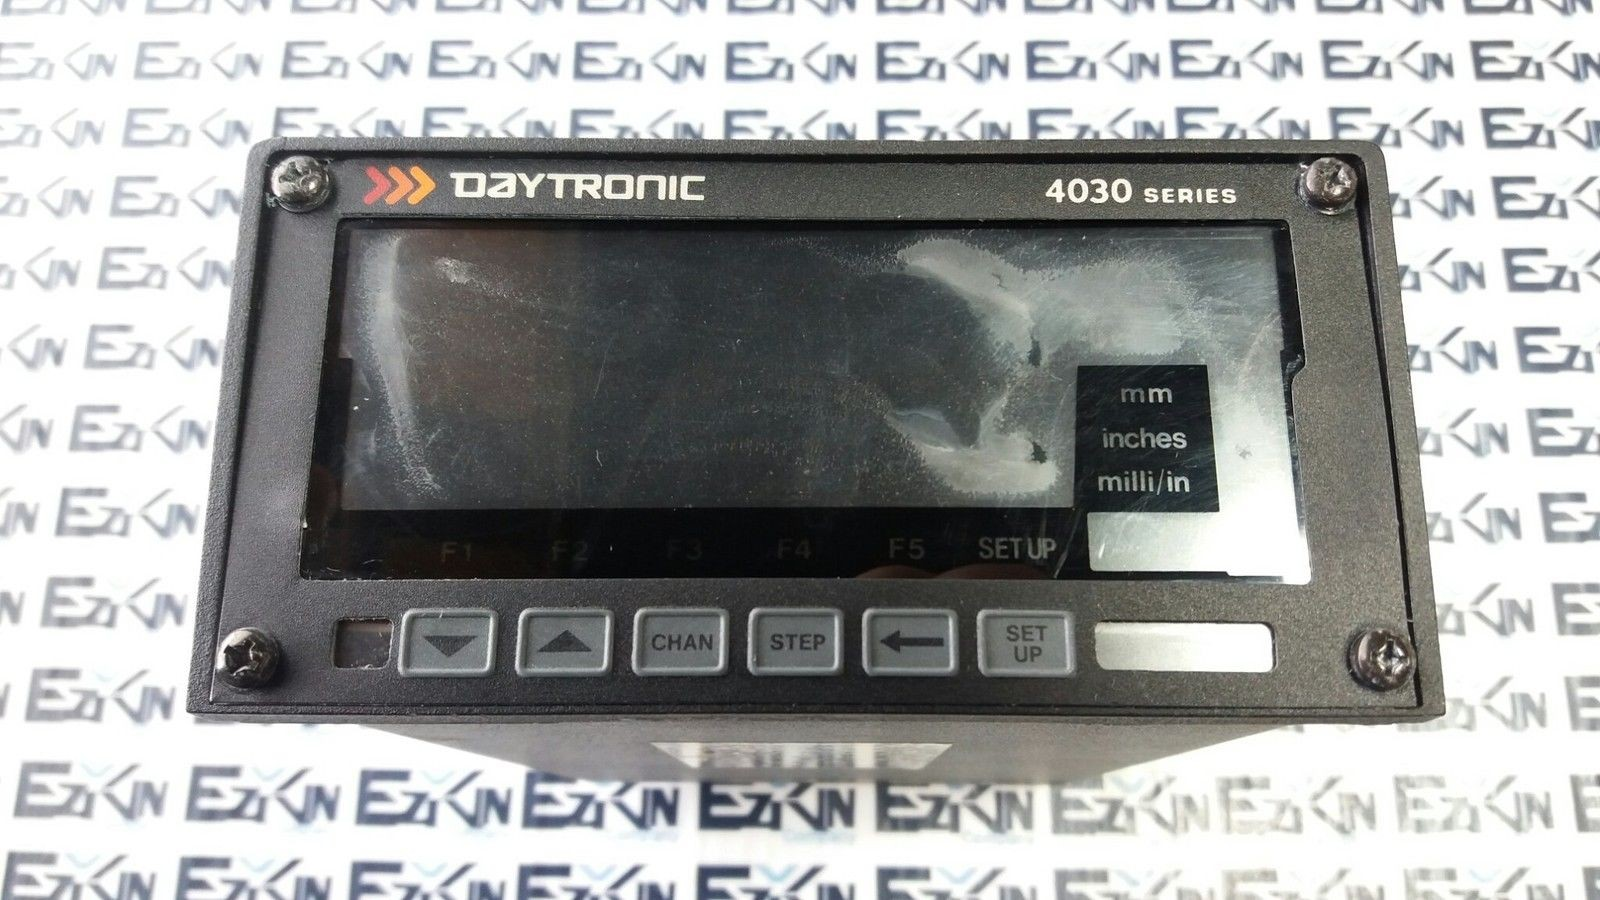 DAYTRONIC 4030 110/220 VAC 50-400HZ SINGLE-CHANNEL AC LVDT CONTROLLER